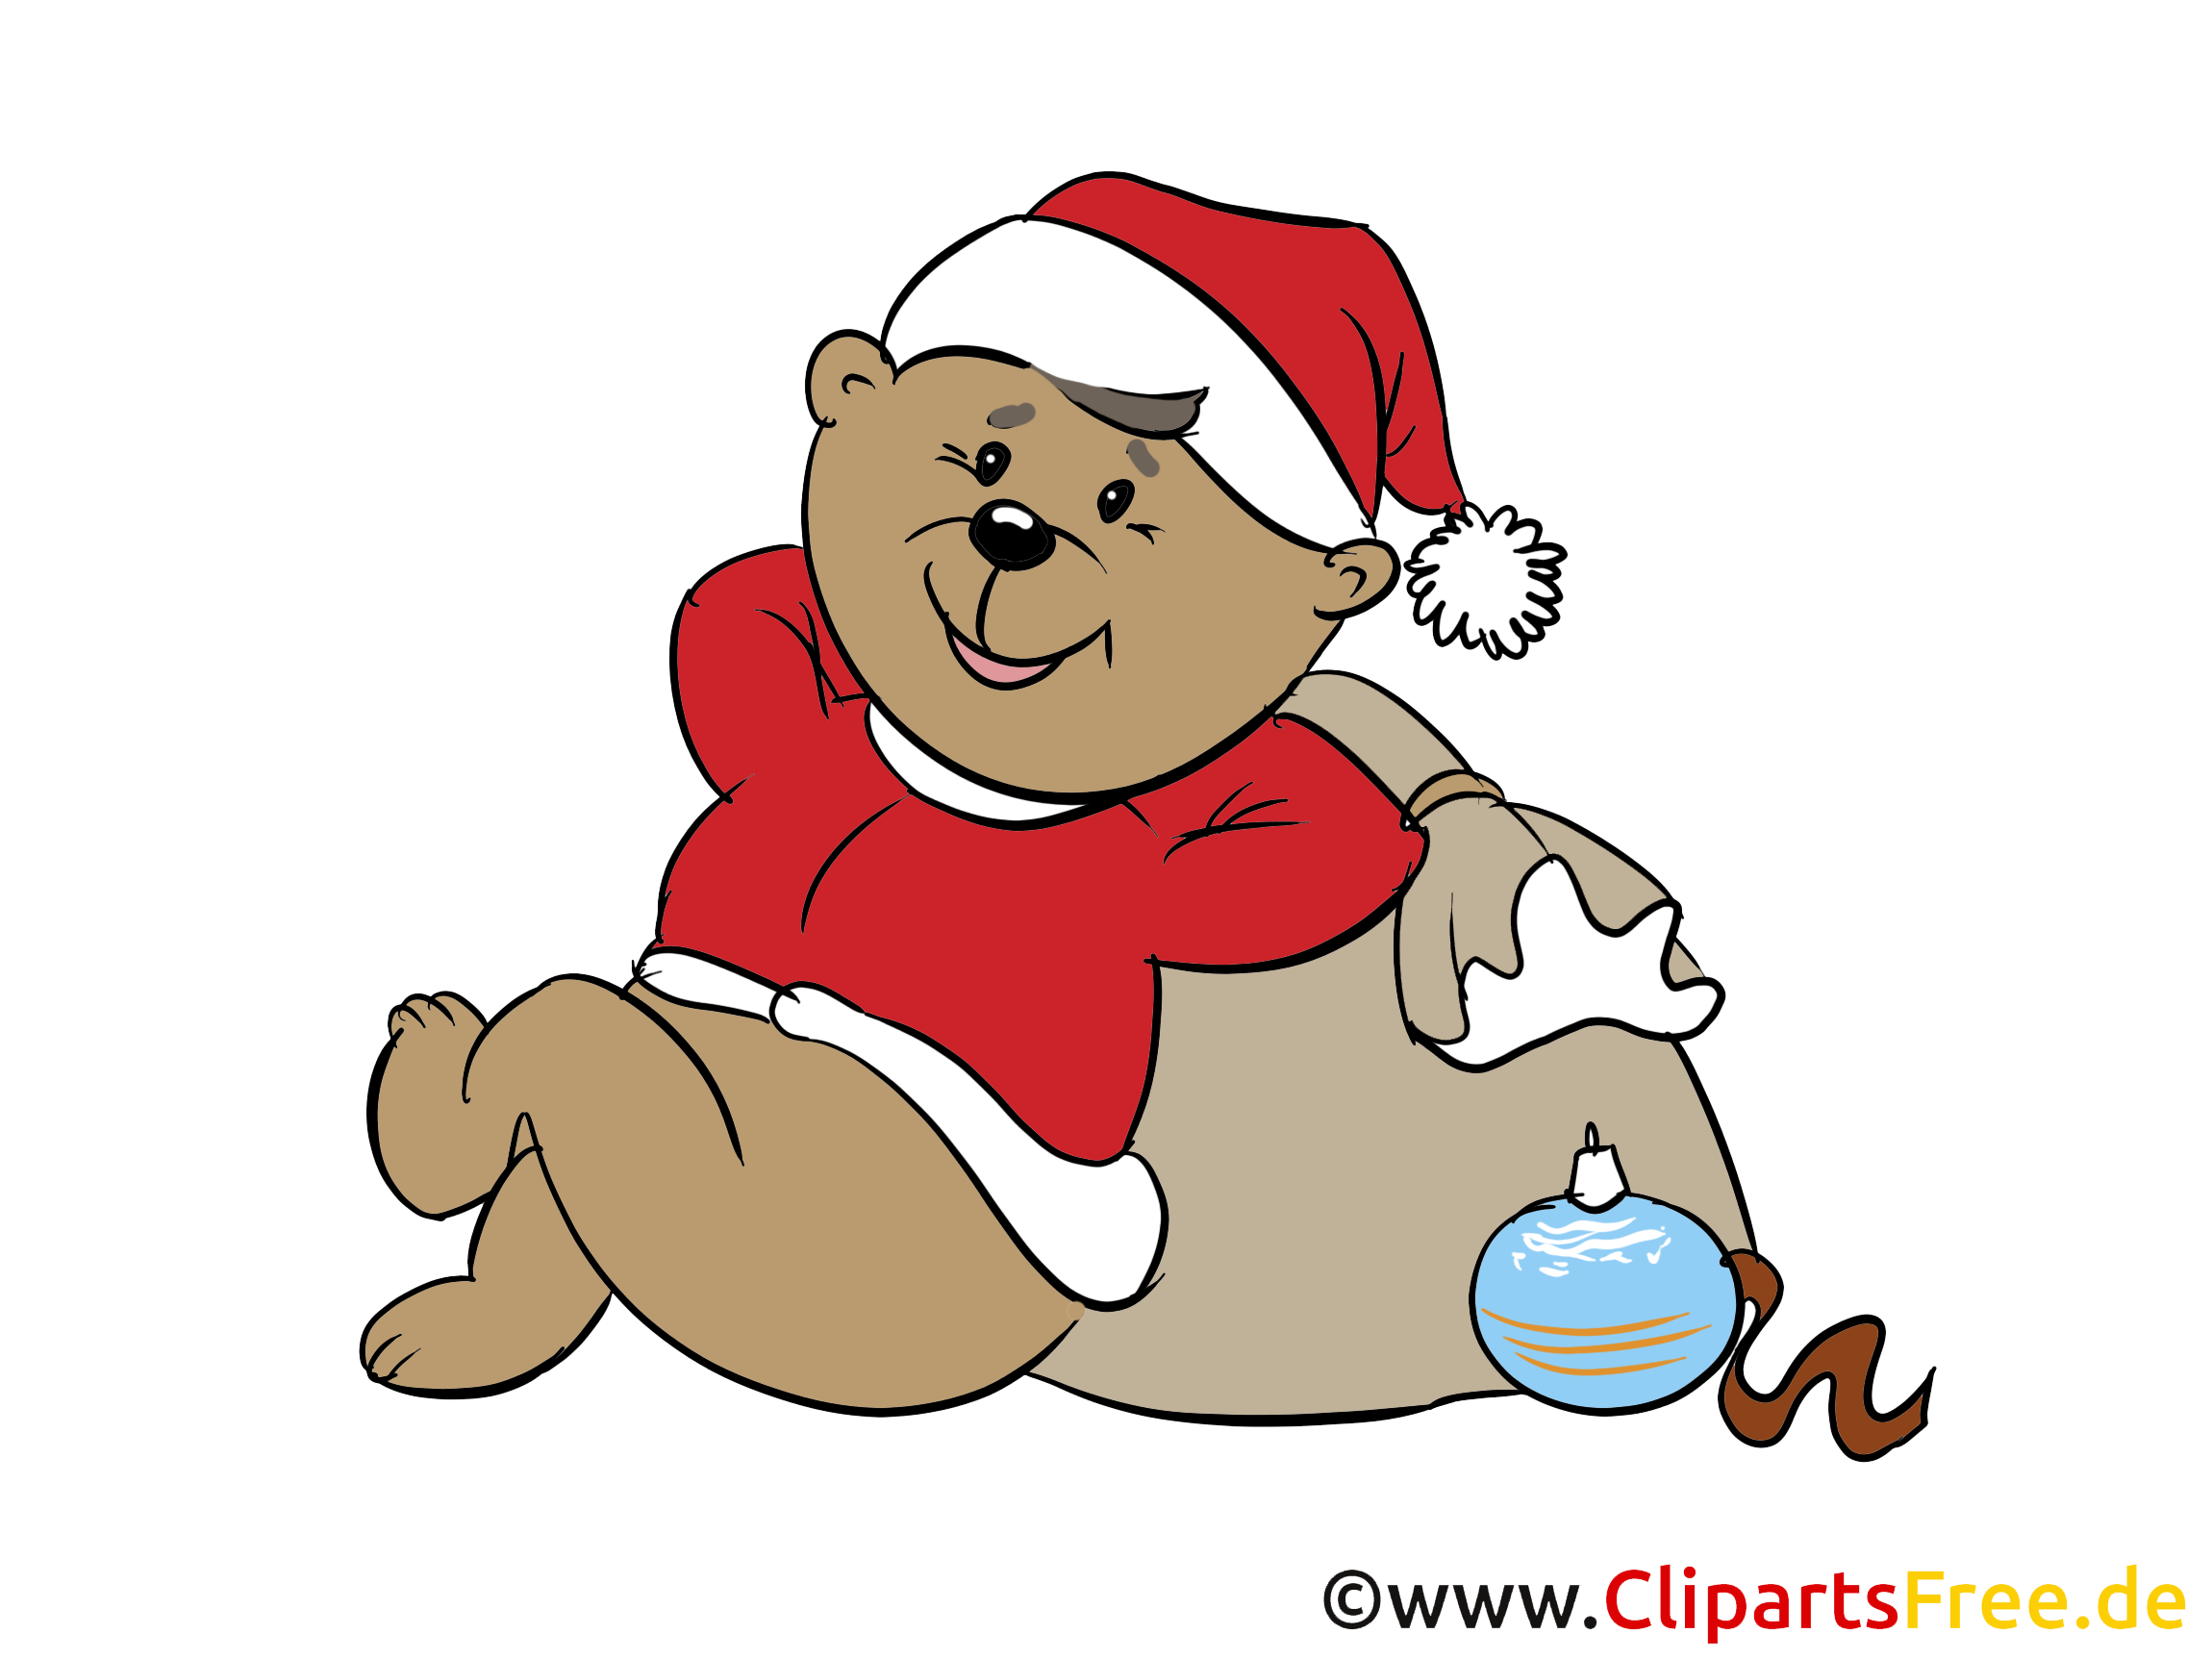 Free Happy New Year Clipart, Download Free Clip Art, Free Clip Art on  Clipart Library